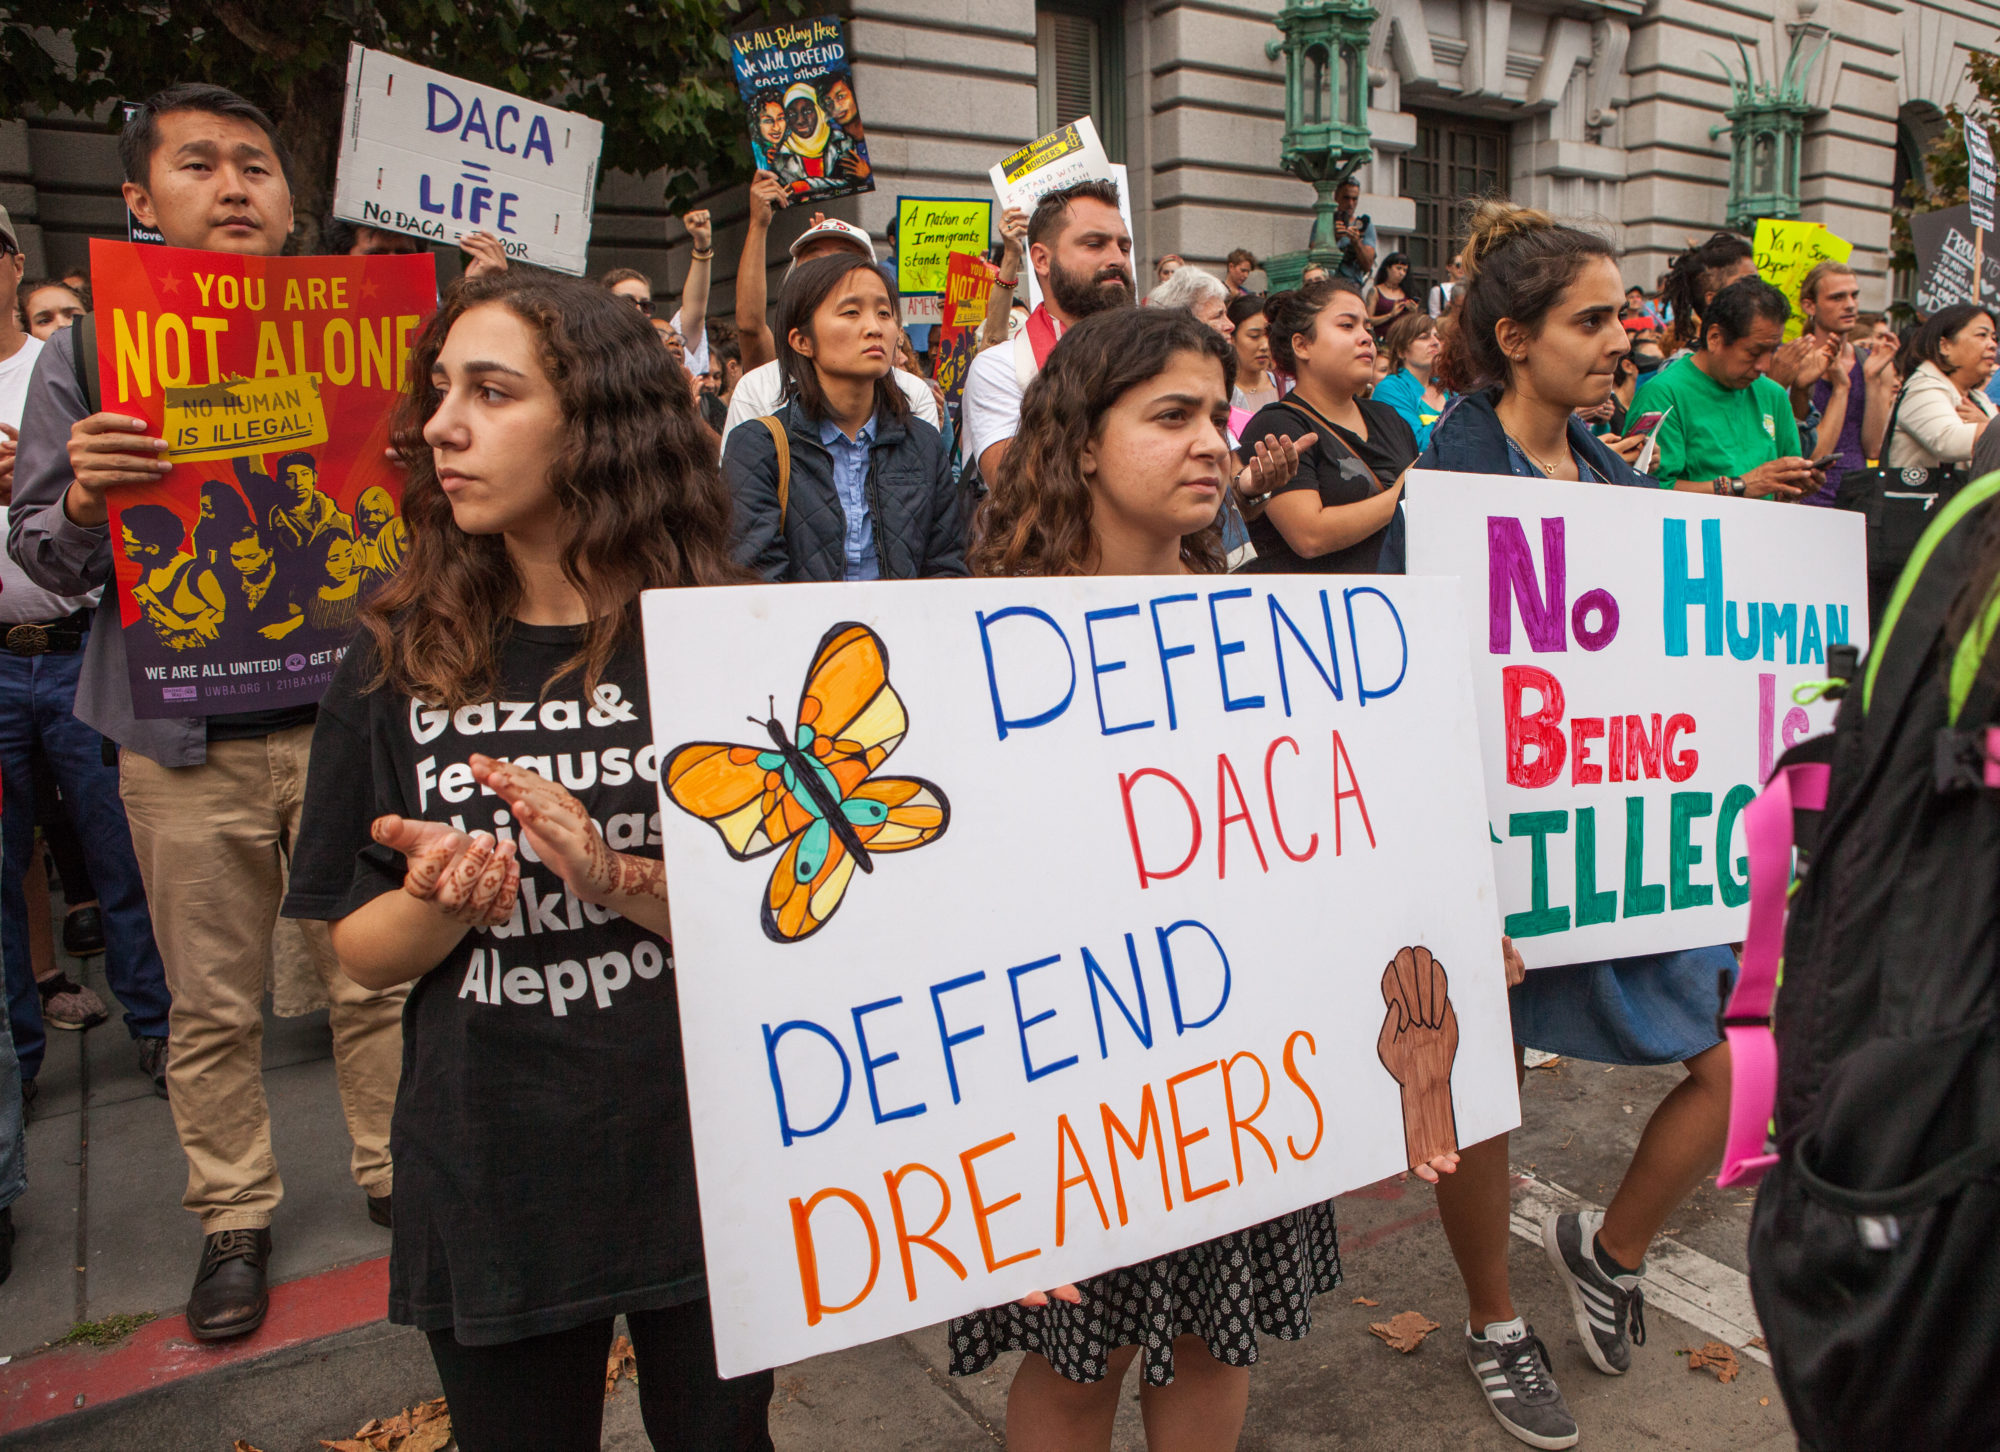 When can DACA recipients apply for marriage green cards?